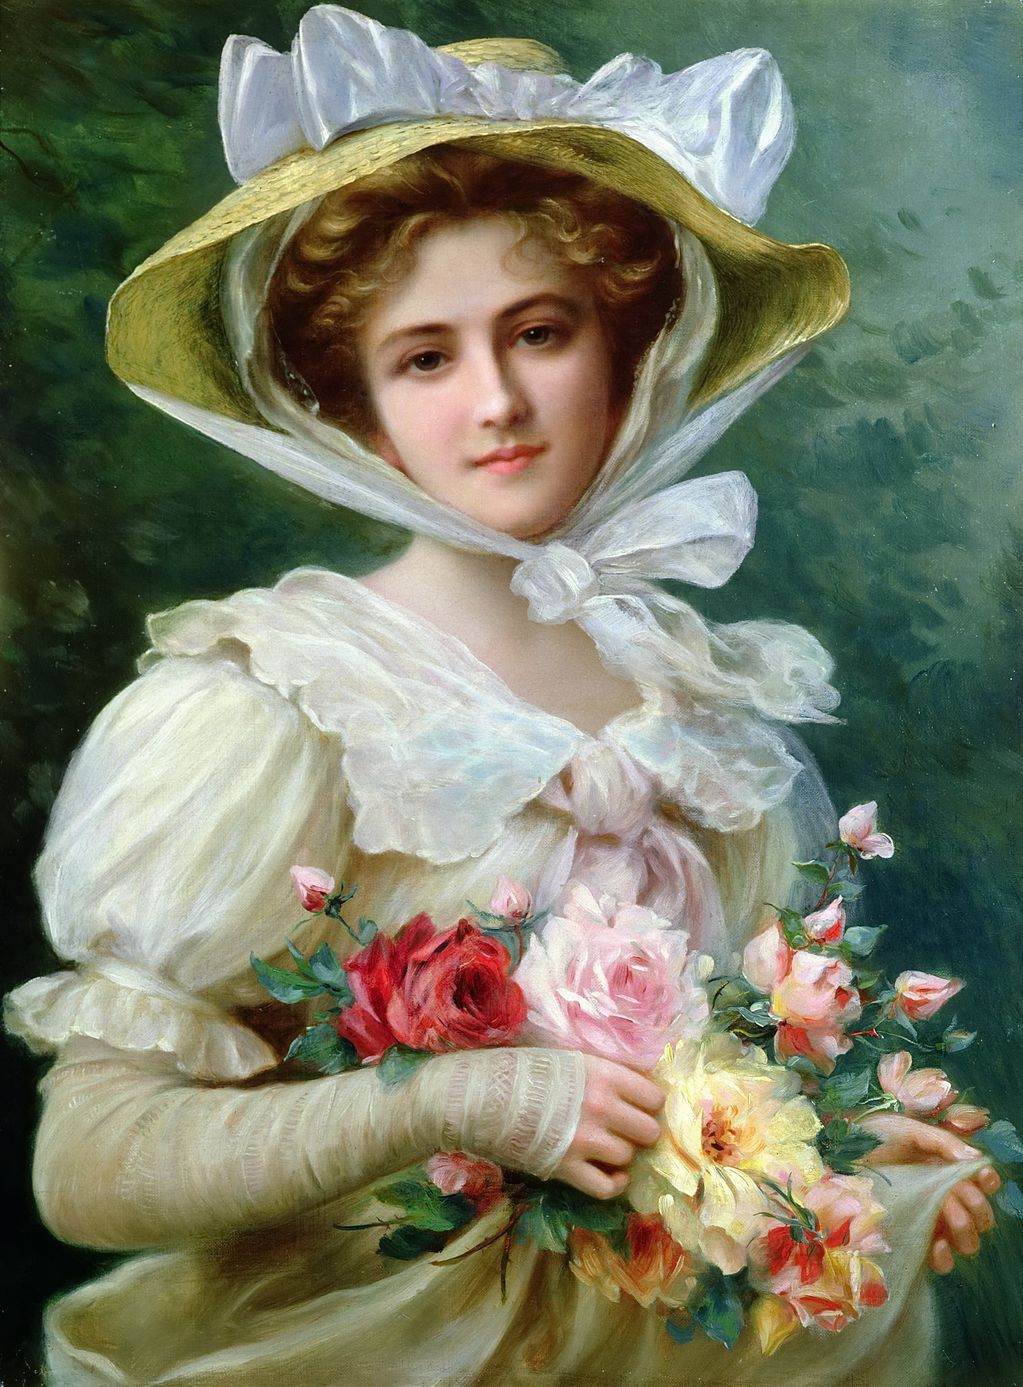 Elegant Lady with a Bouquet of Roses by Emile Vernon